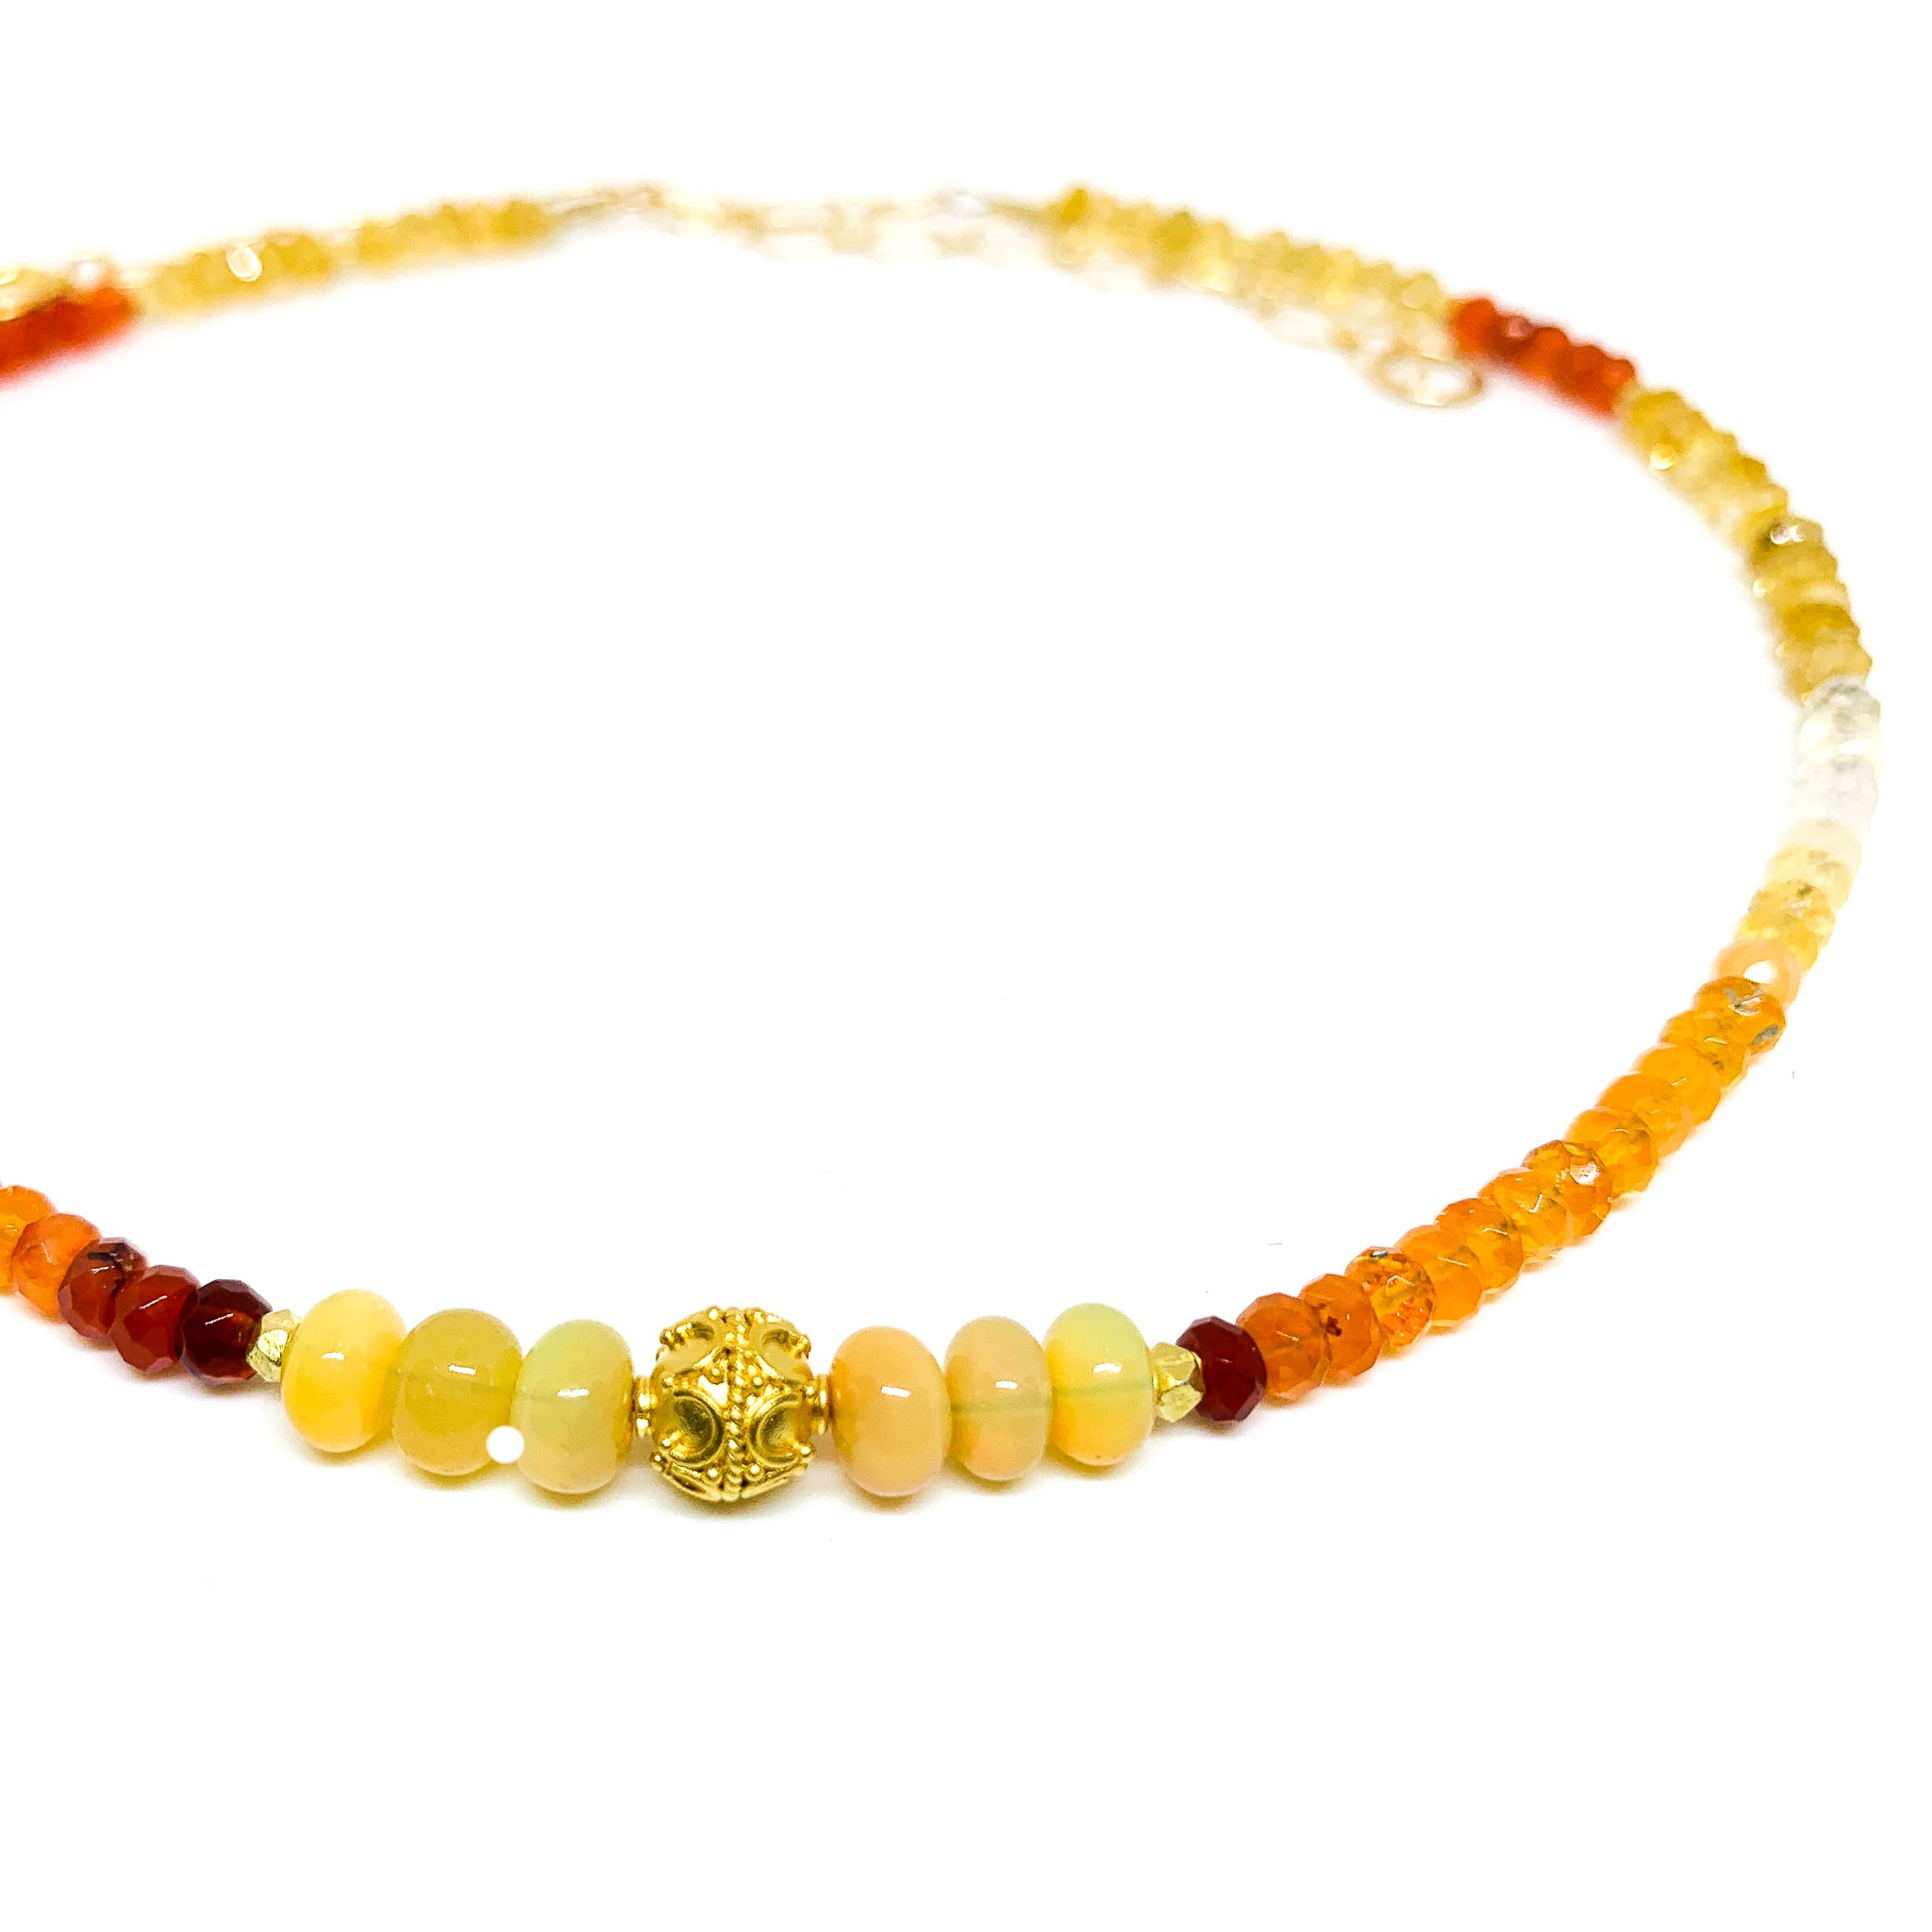 Fire Opal necklace with vermeil bead on short 14 karat golf fill necklace eve black jewelry Hawaii